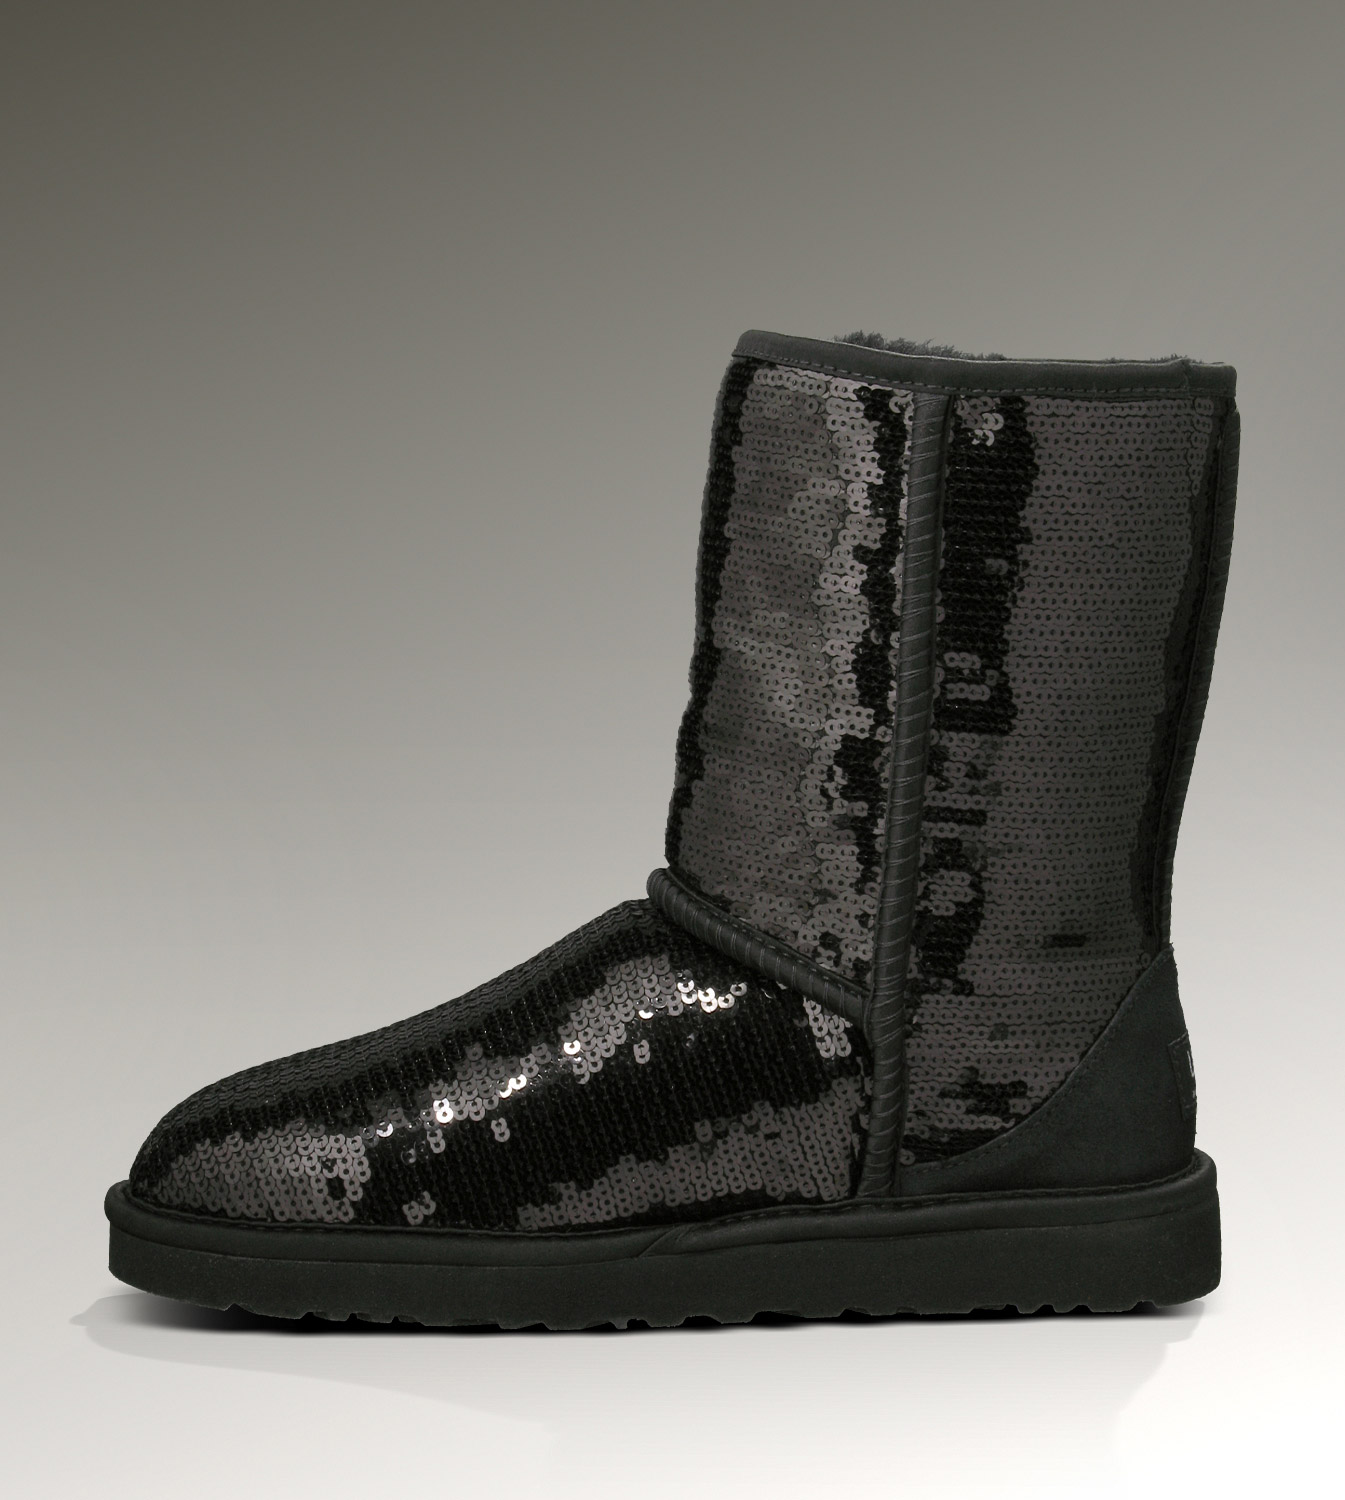 UGG Classic Short Sparkles 3161 Black Boots